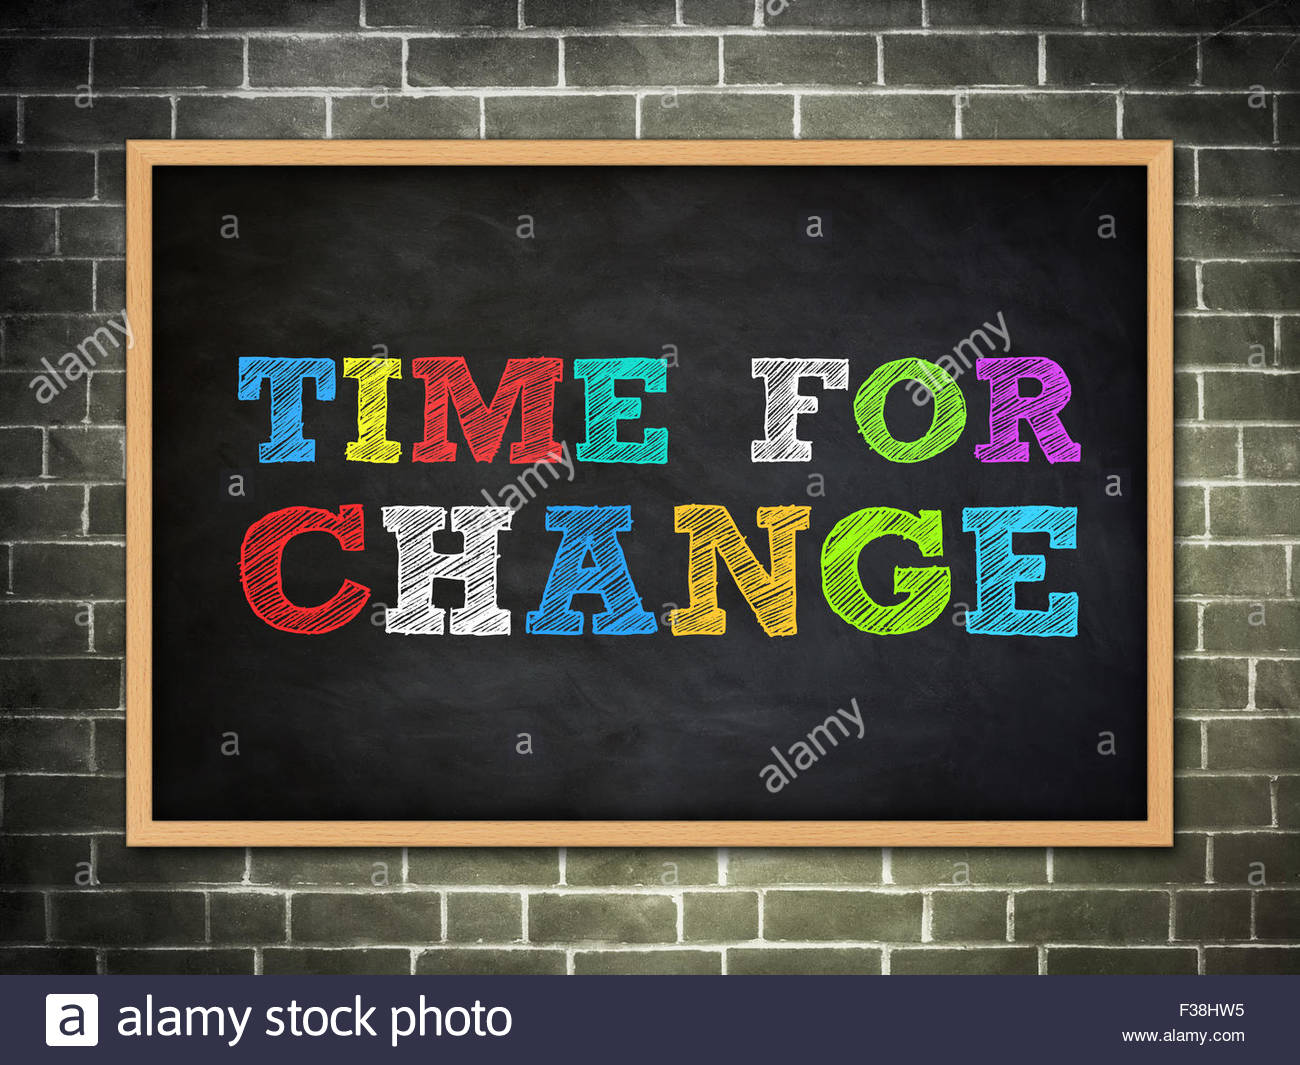 Time for change motivational concept - Stock Image